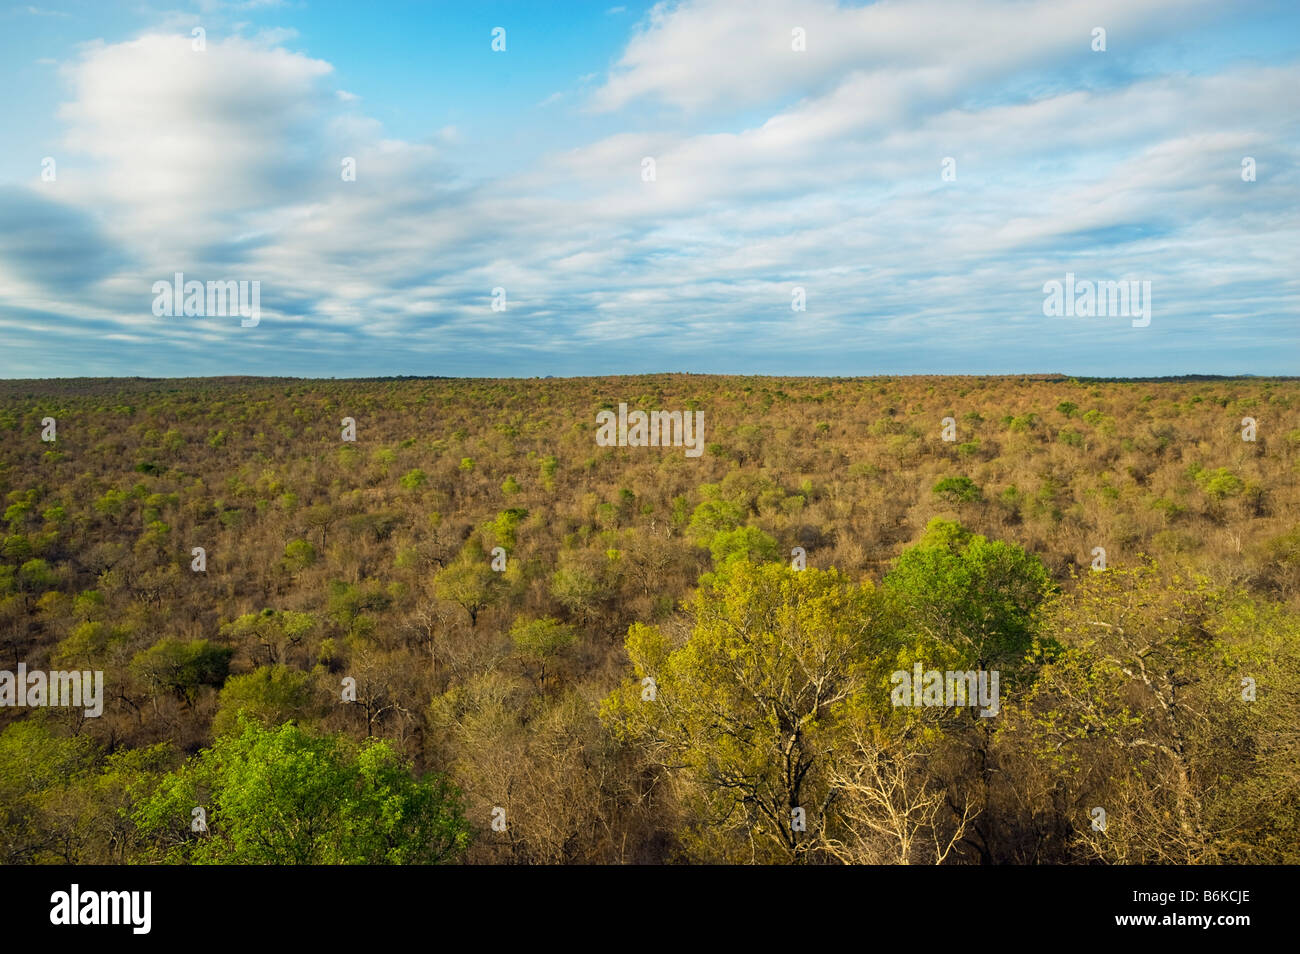 wide view landscape south africa desert red dust dirt road drive way safari savannah woodland bush bushland dryness - Stock Image